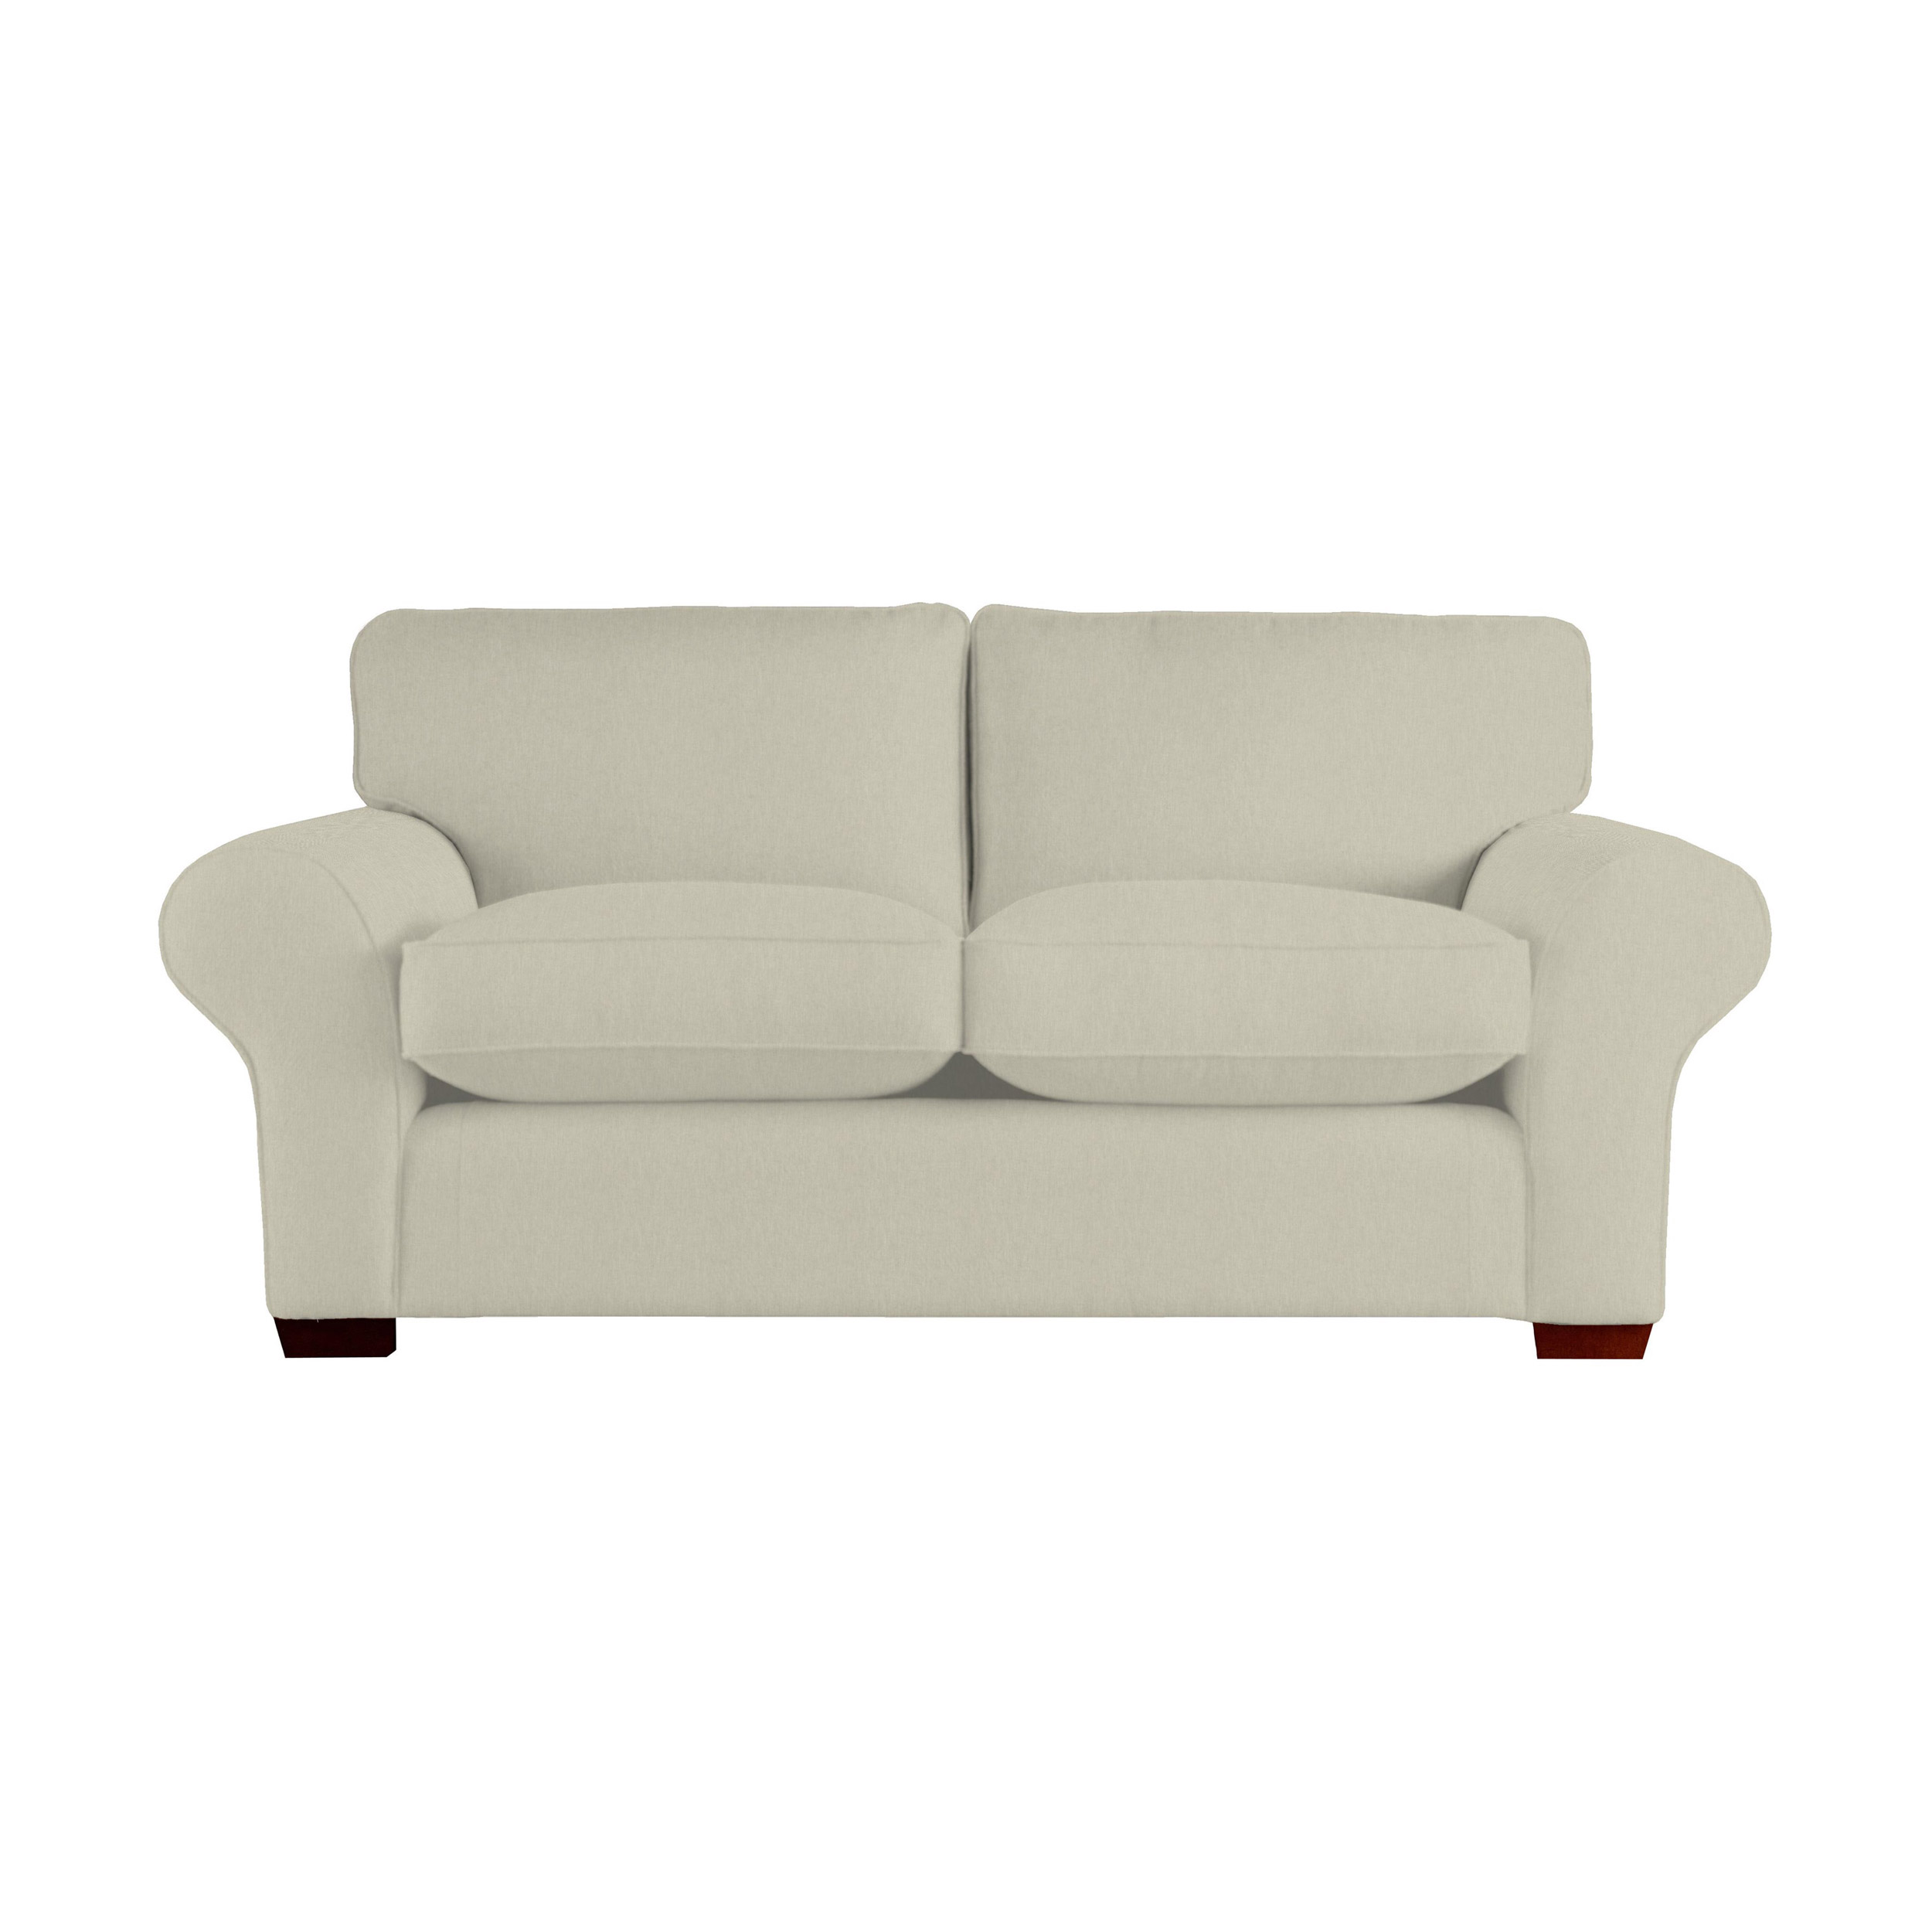 two seater sofa bed cover frames for sale bradford fixed covers 2 mysmallspace